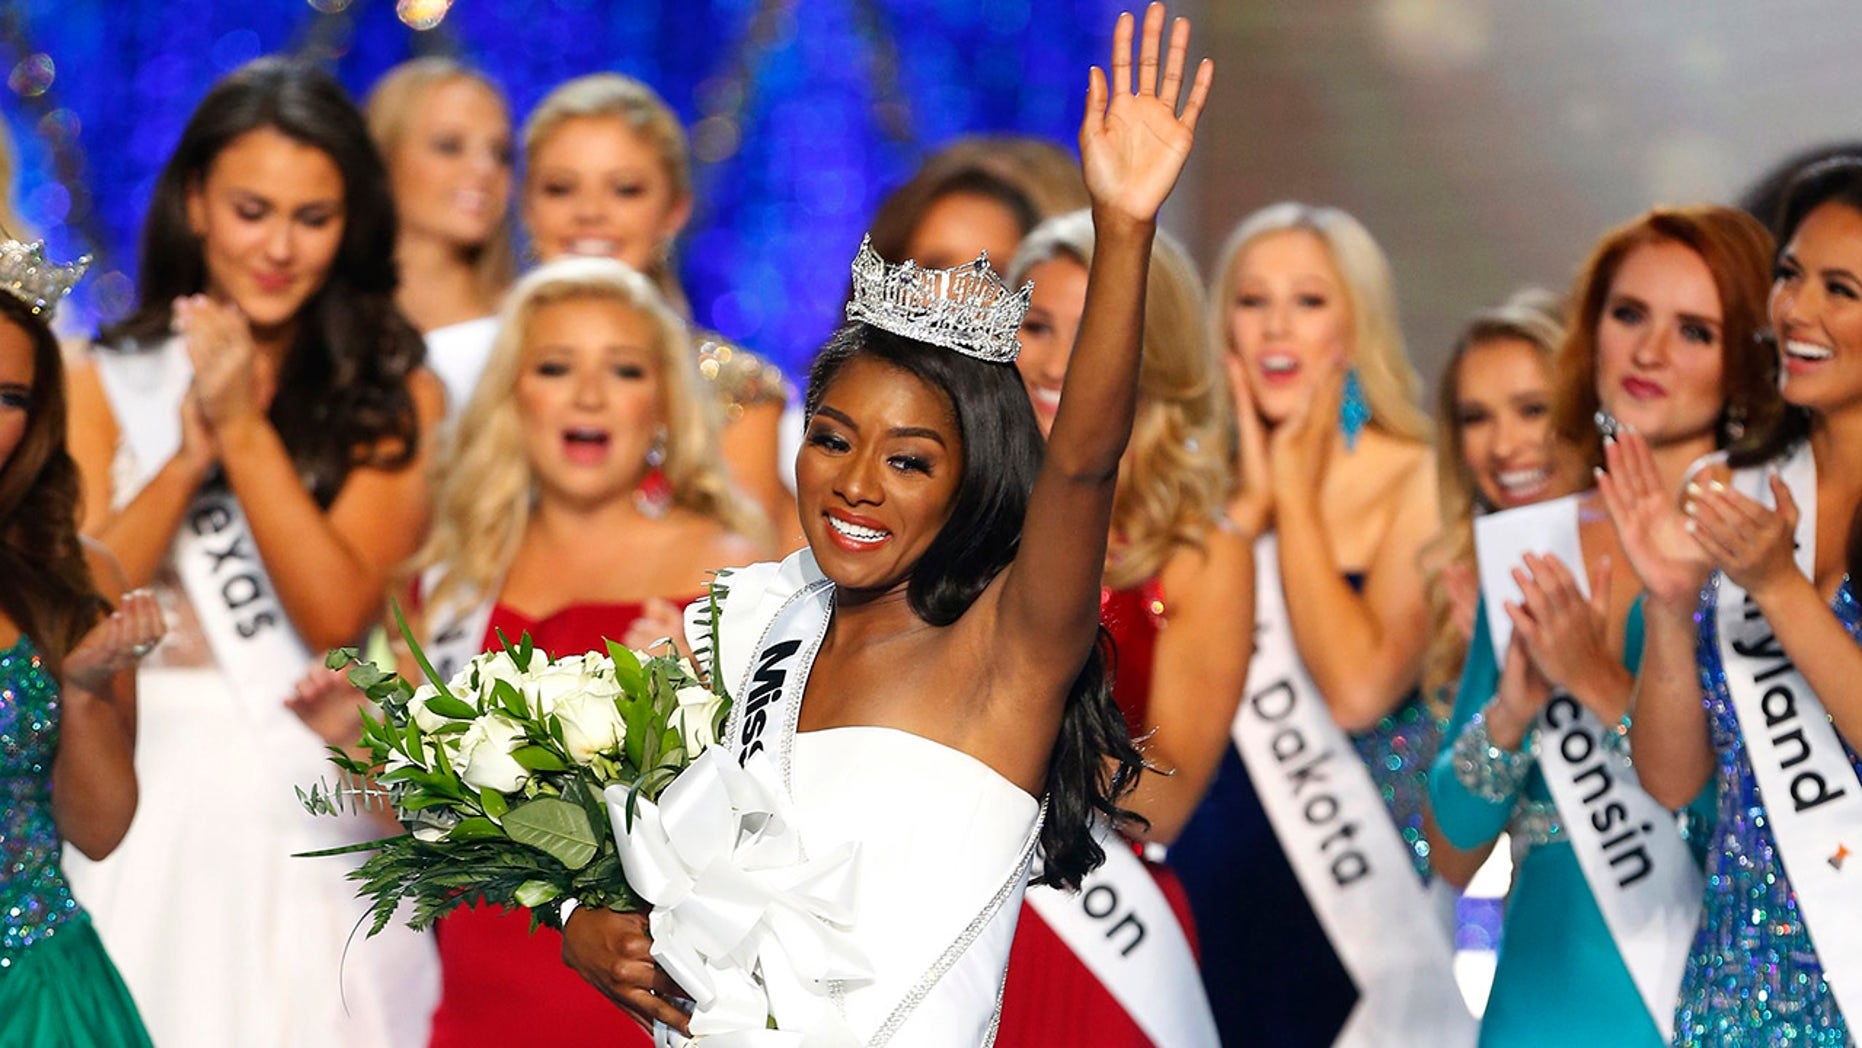 New Miss America Is Glad She Didnt Have To Wear Swimsuit To Win